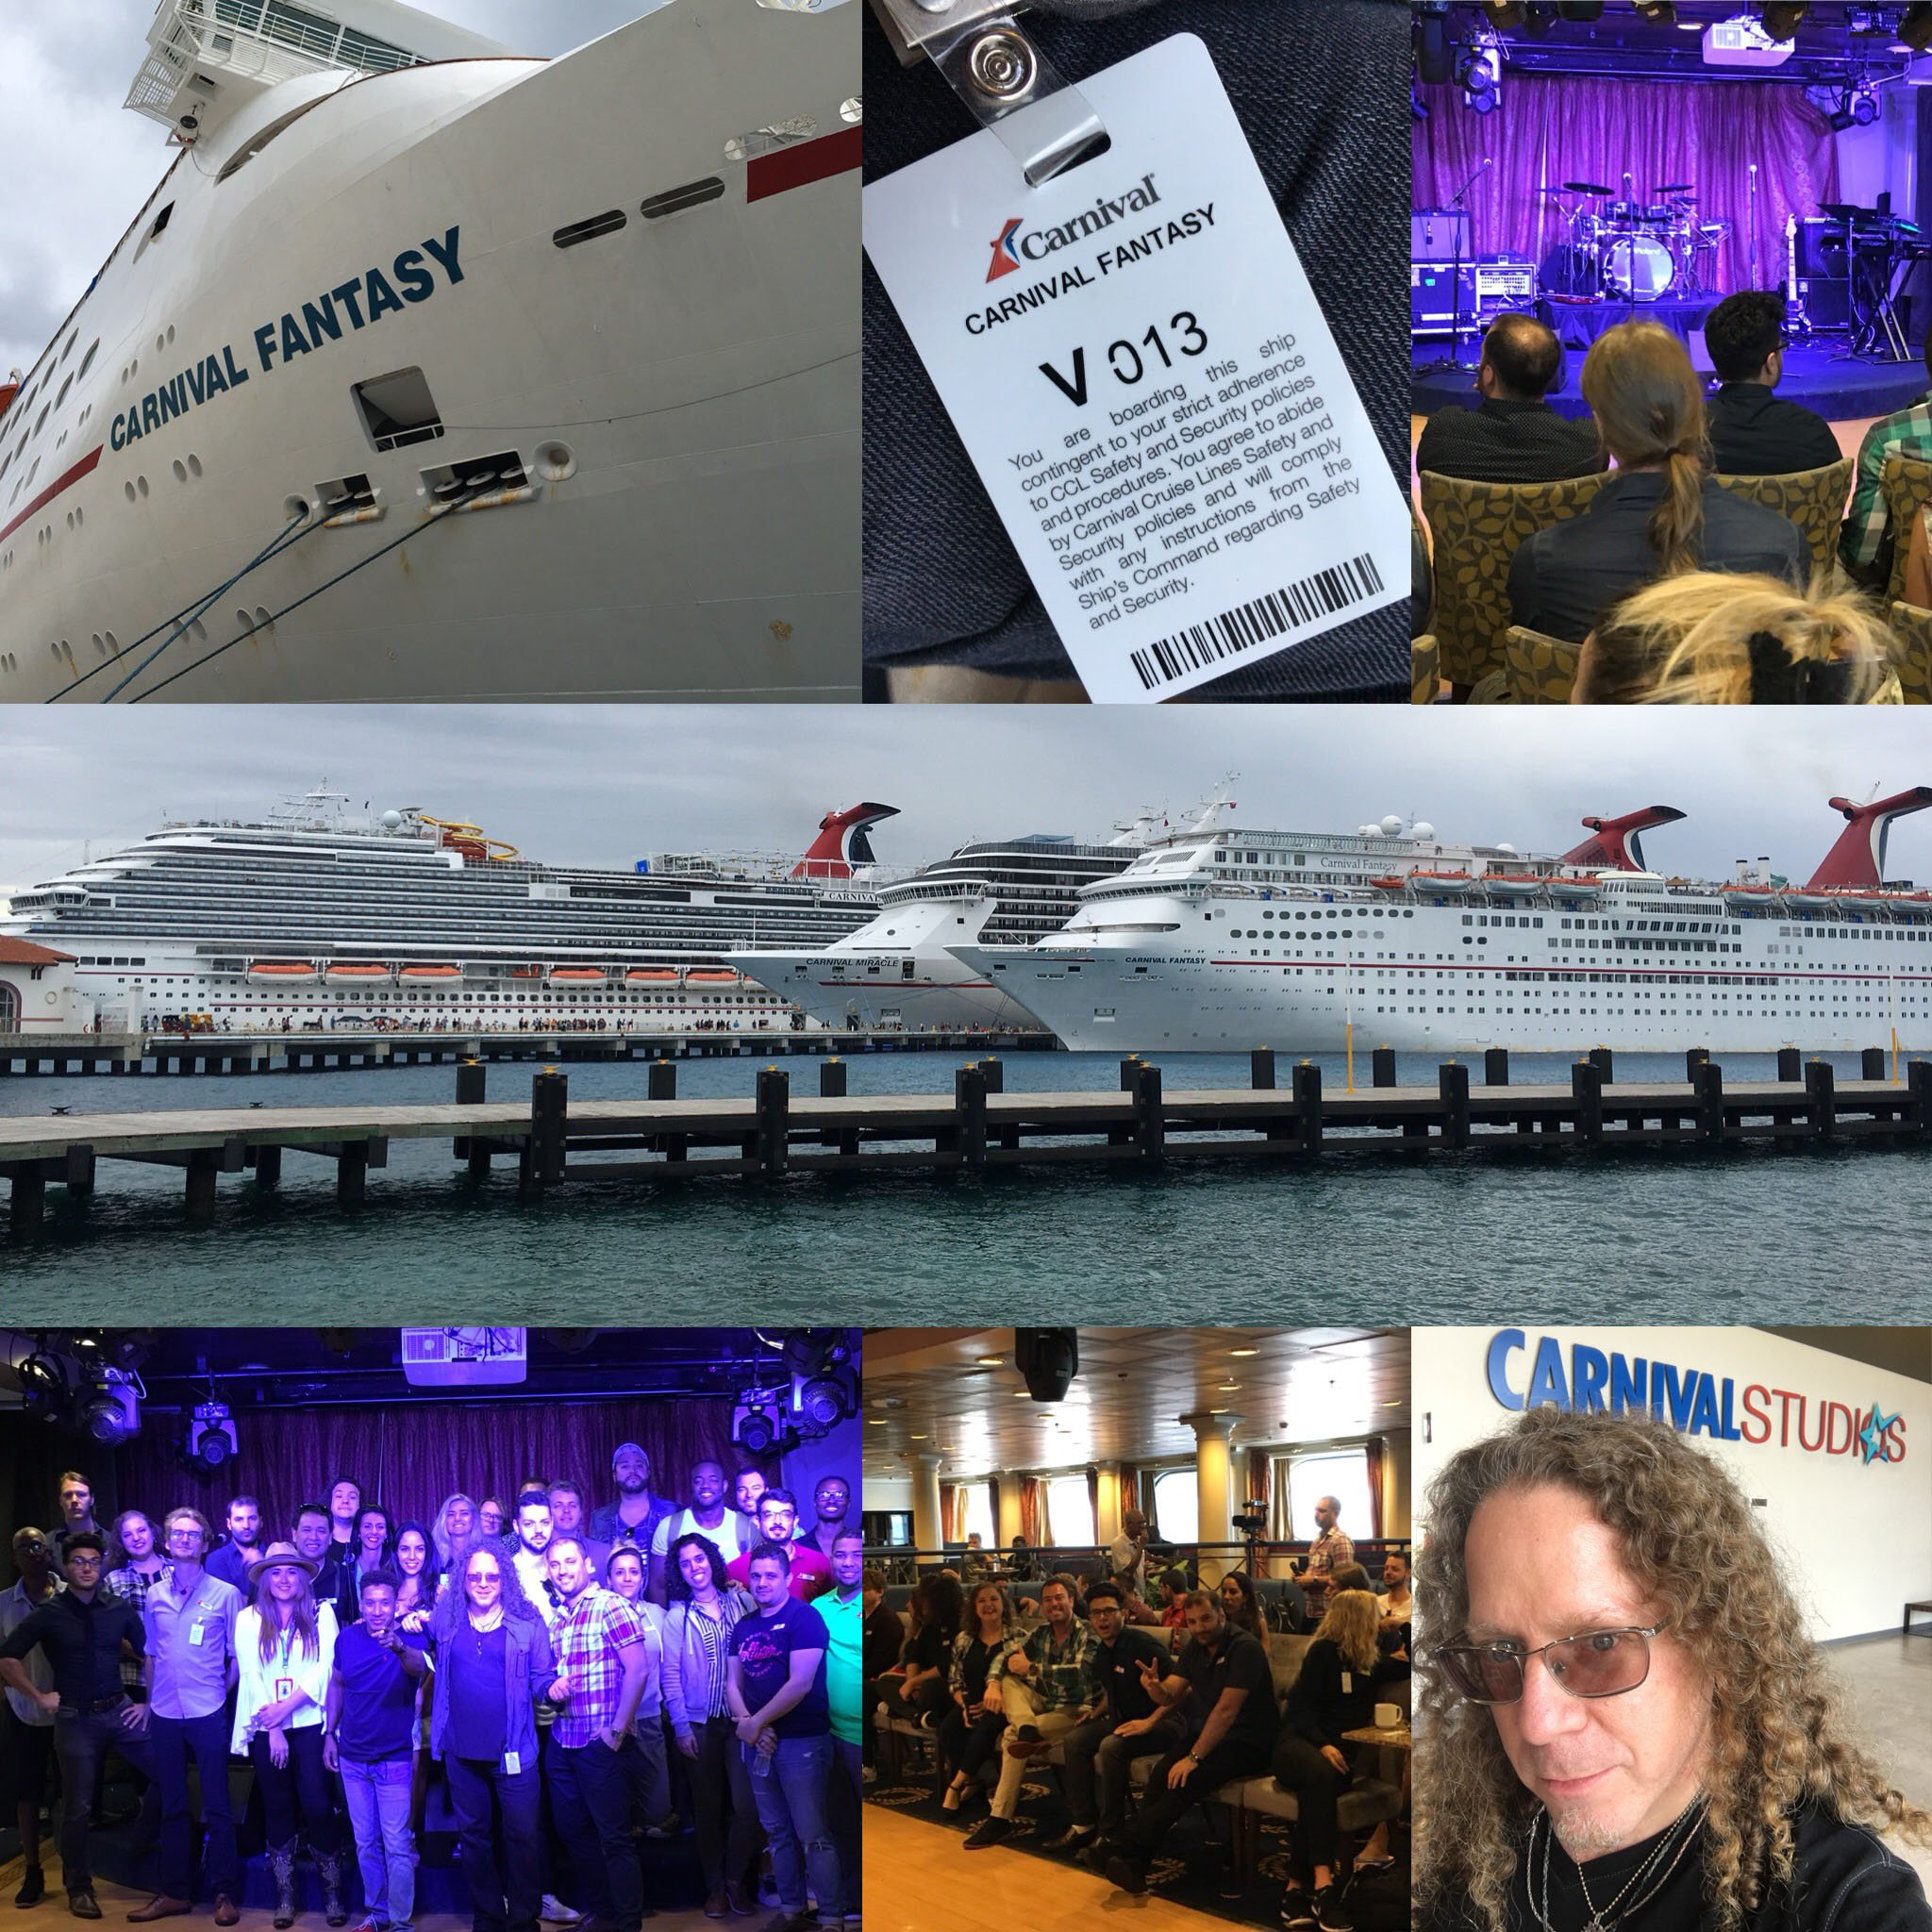 Carnival Cruise Line brings Bram onboard to make their live shows count